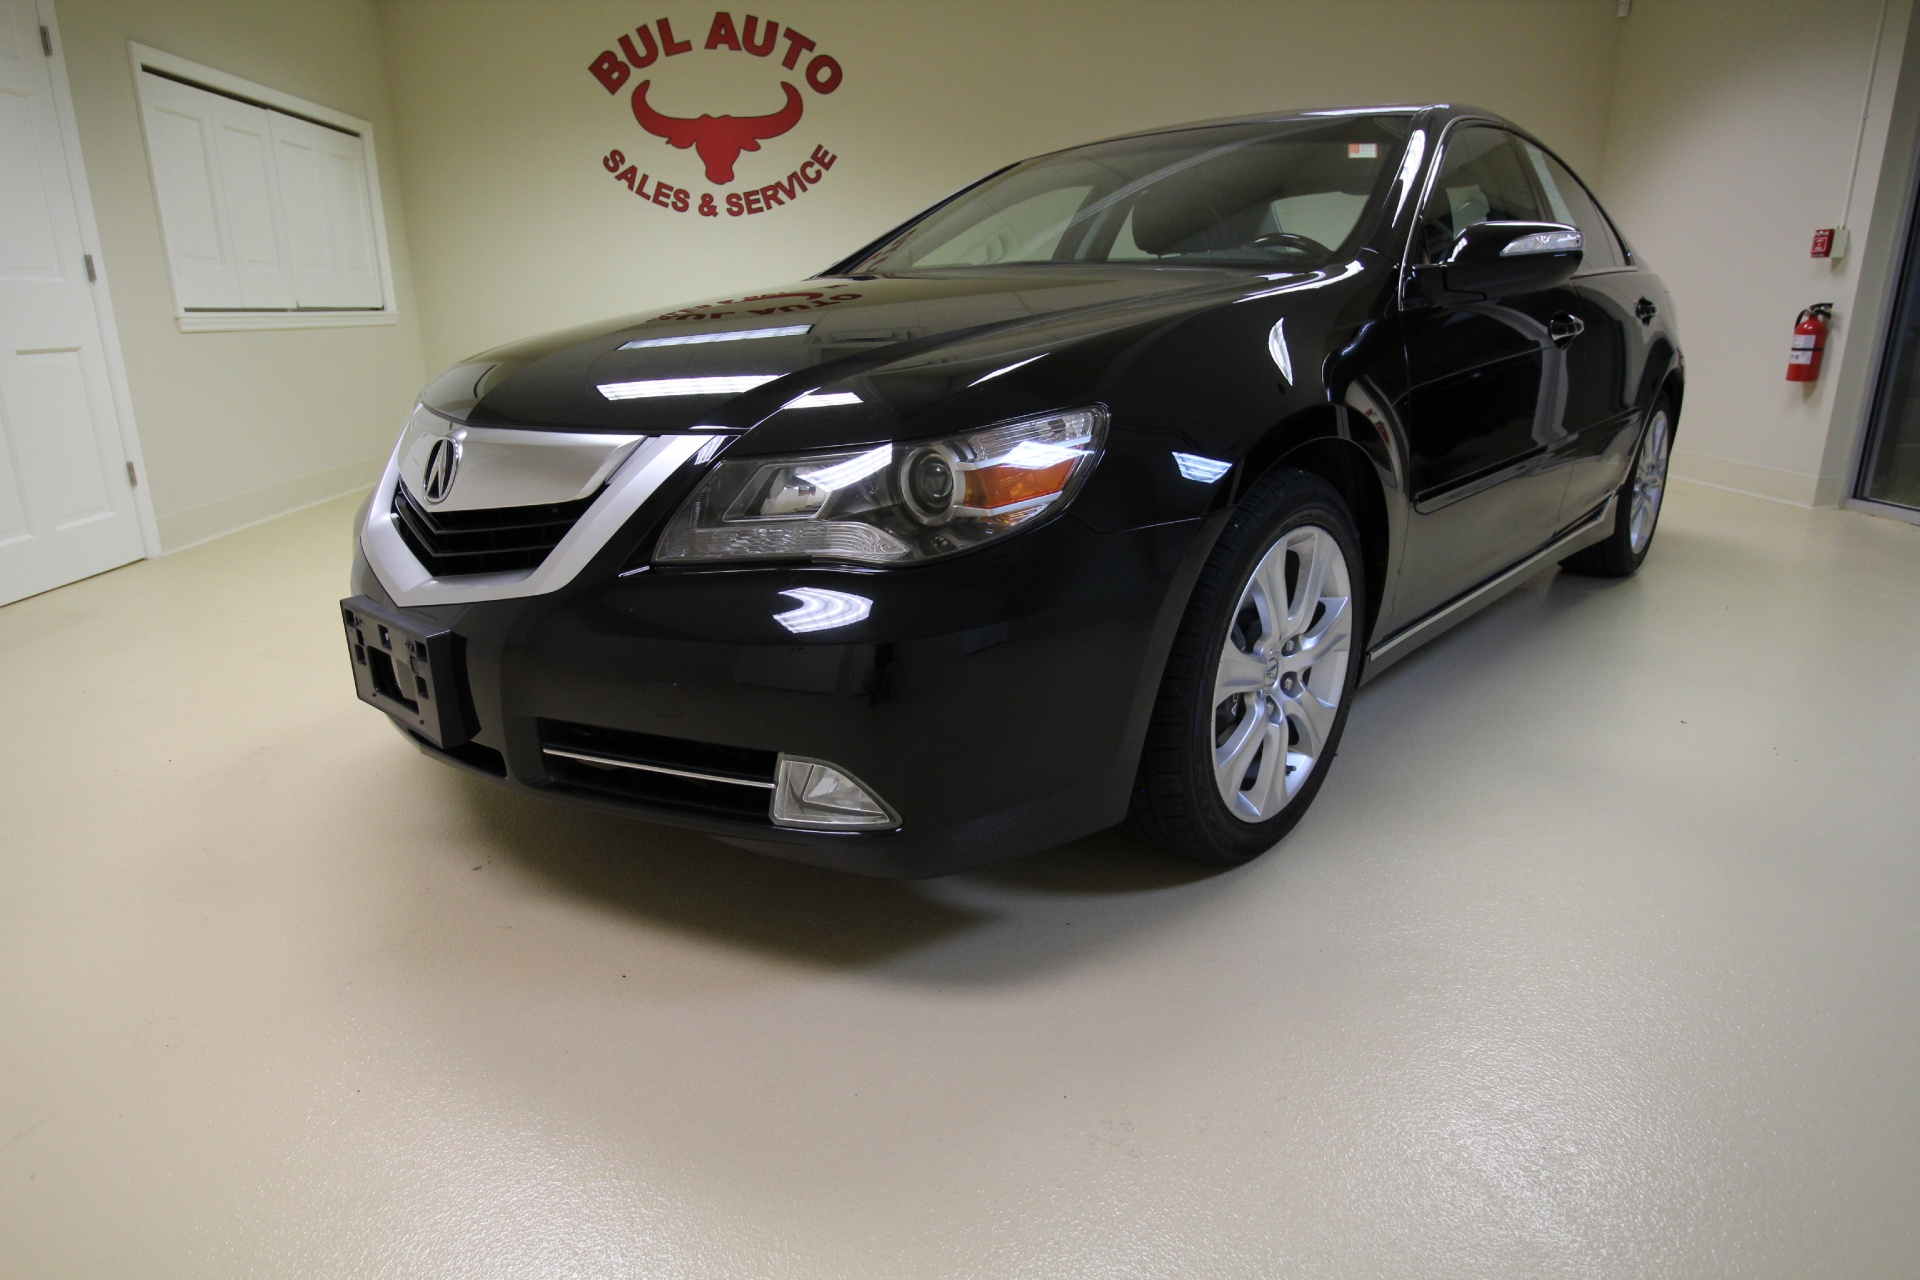 acura trend used awd motors rockaway for center sale stk nj rl watch loaded car at in nav